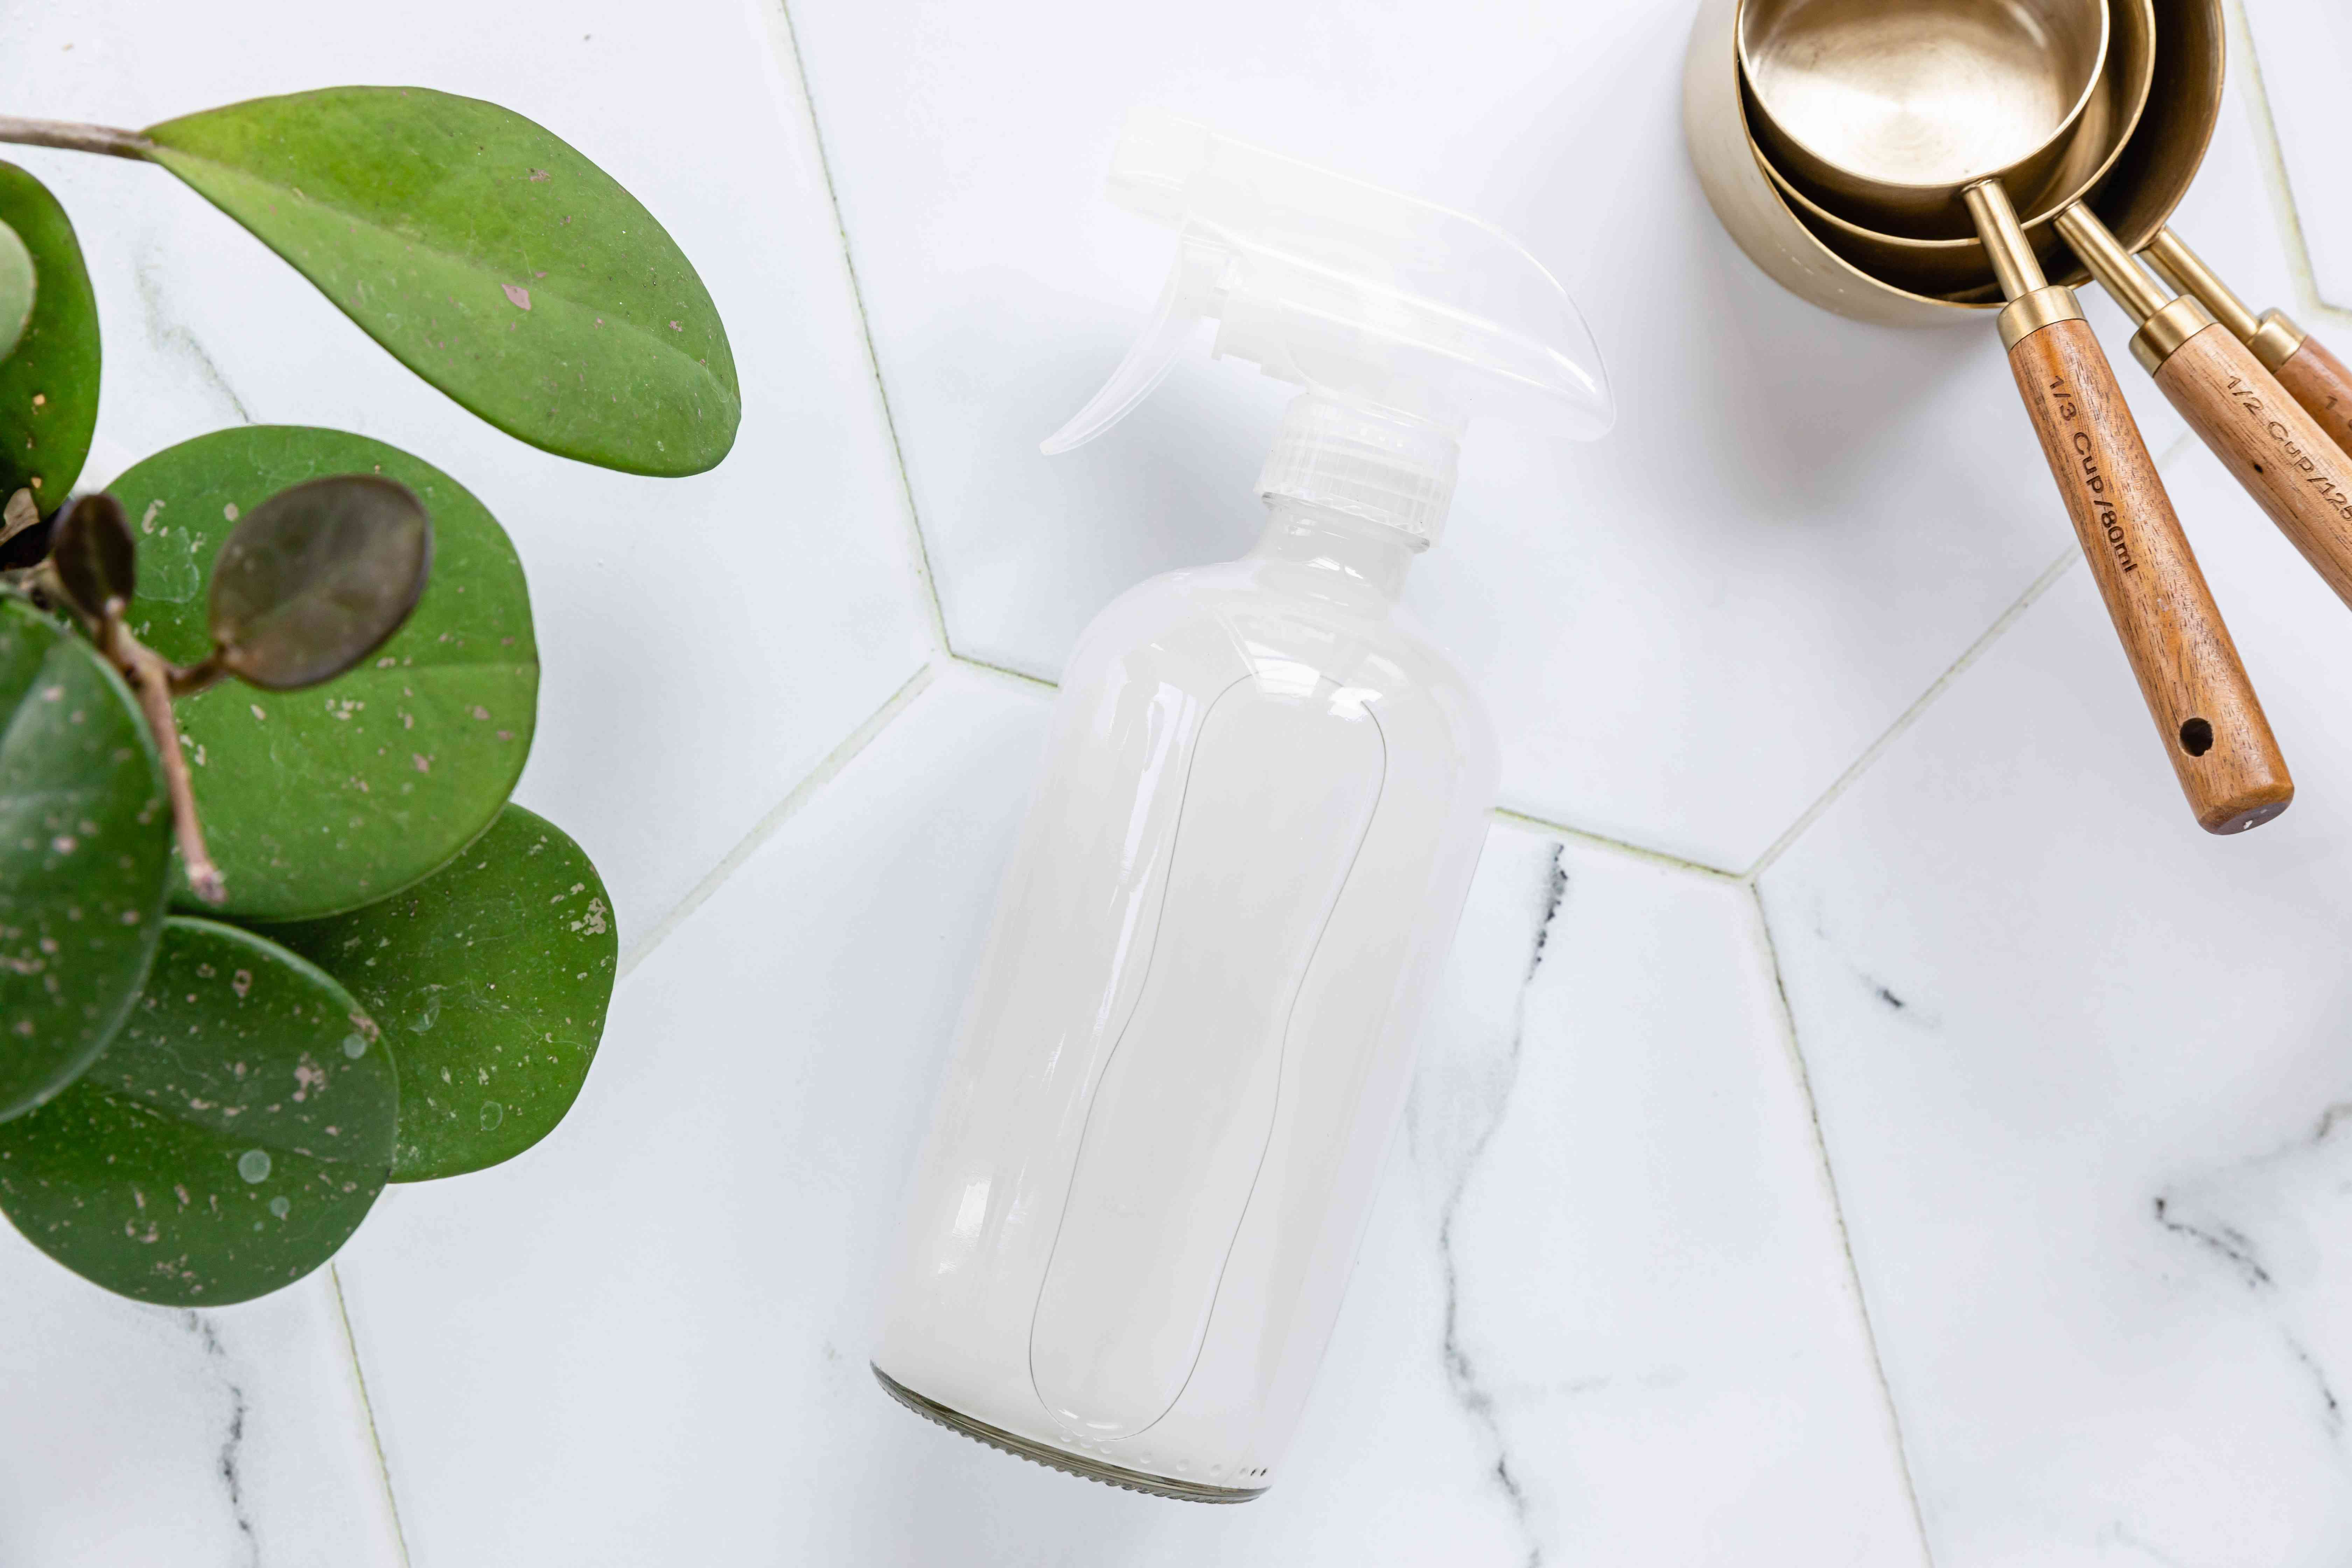 DIY laundry starch and sizing with glass spray bottle, metal measuring spoons and cold water next to houseplant